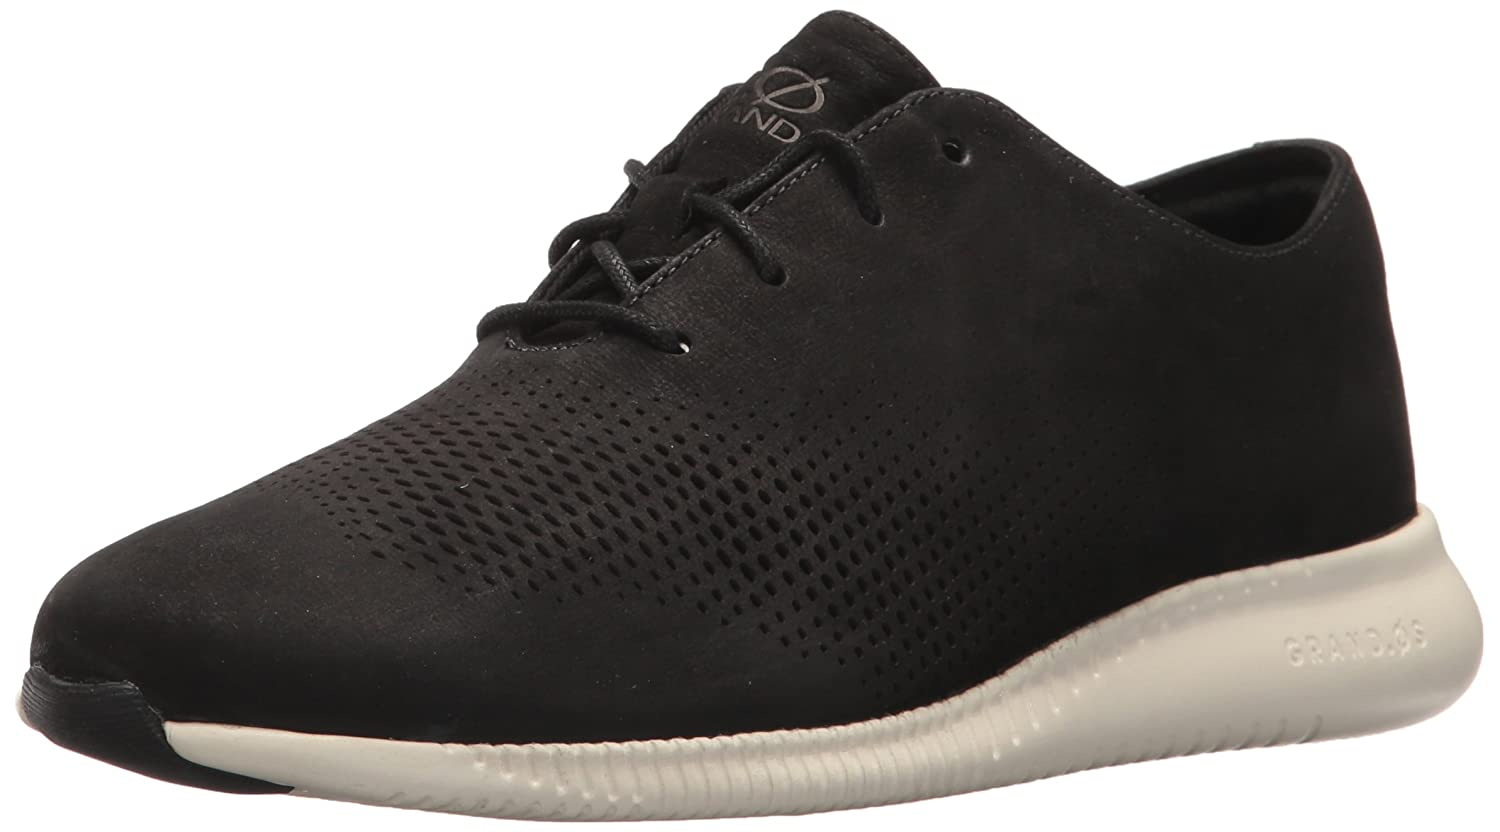 Black Cole Haan Womens 2.Zerogrand Laser Wing Oxford Oxfords